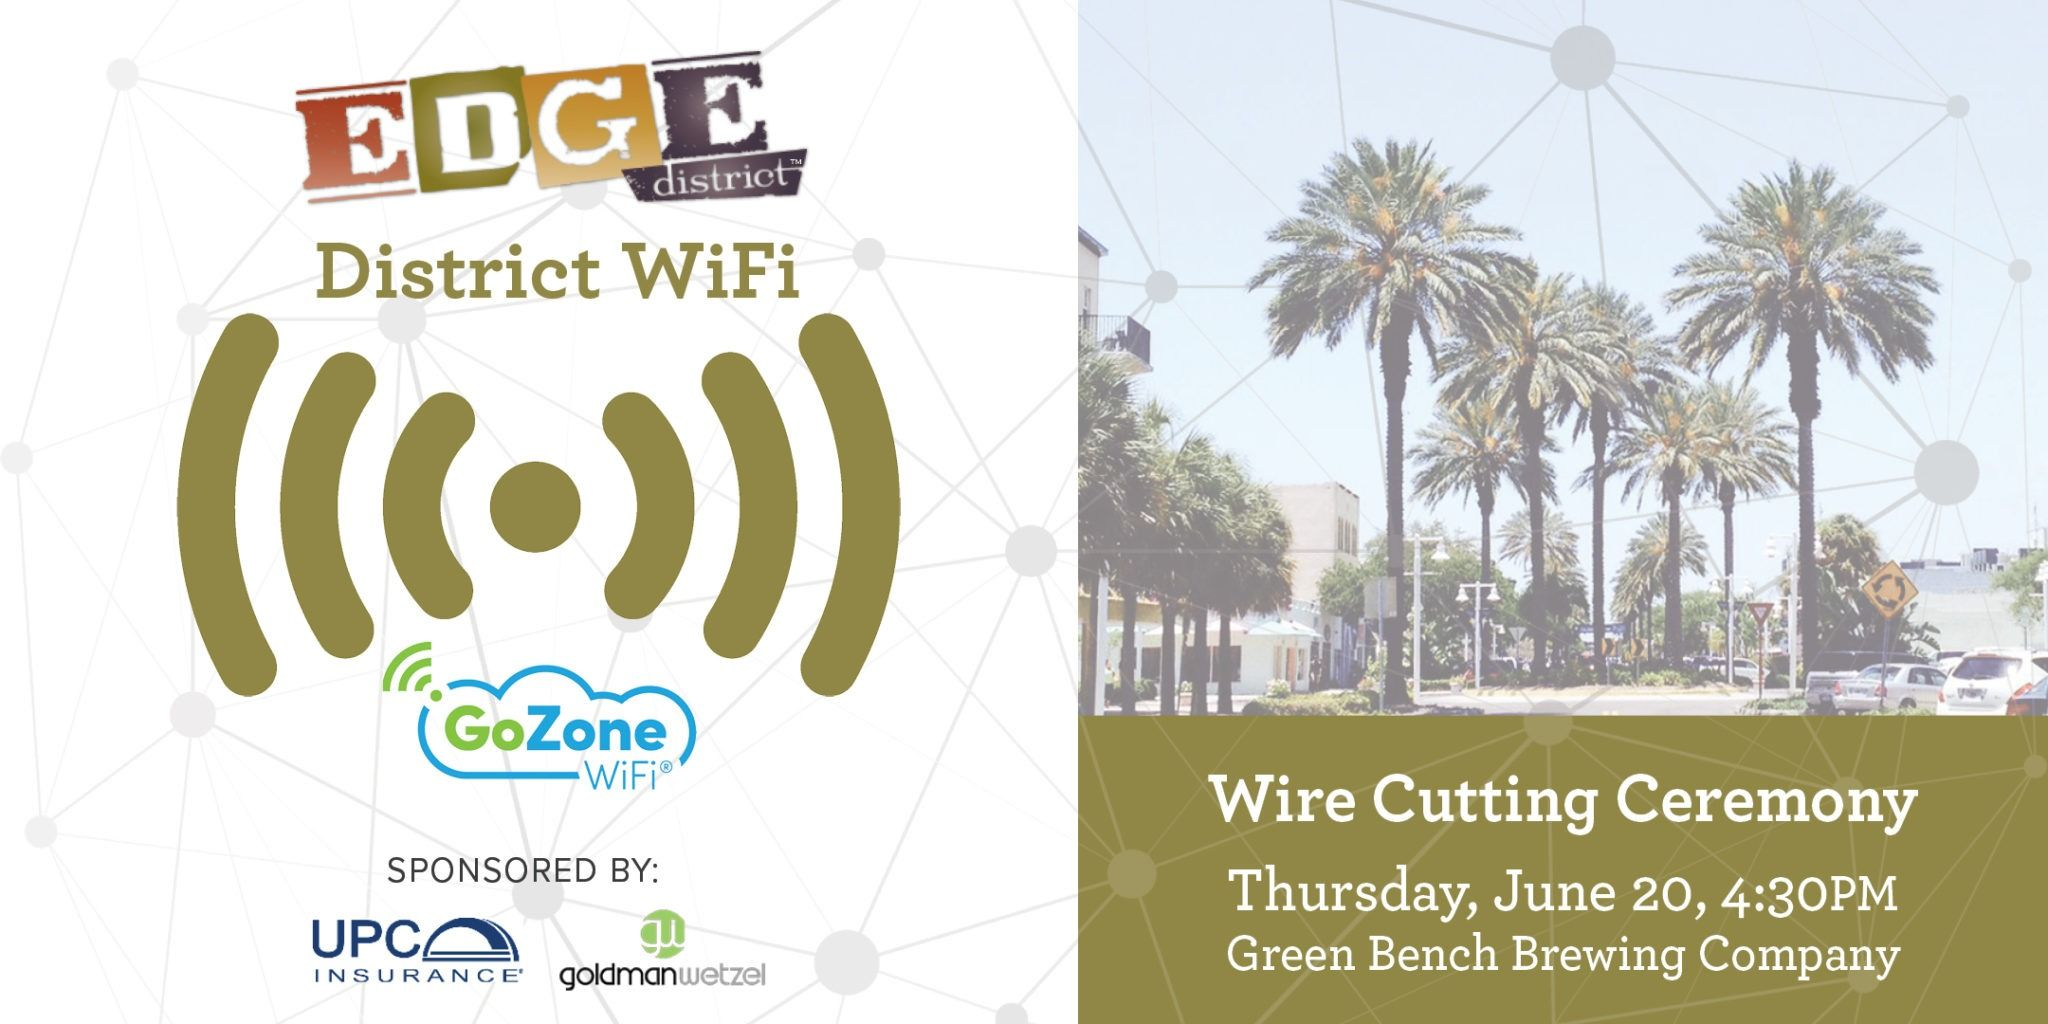 GoZone WiFi Leads Smart City Innovations in St. Petersburg's EDGE District featured image